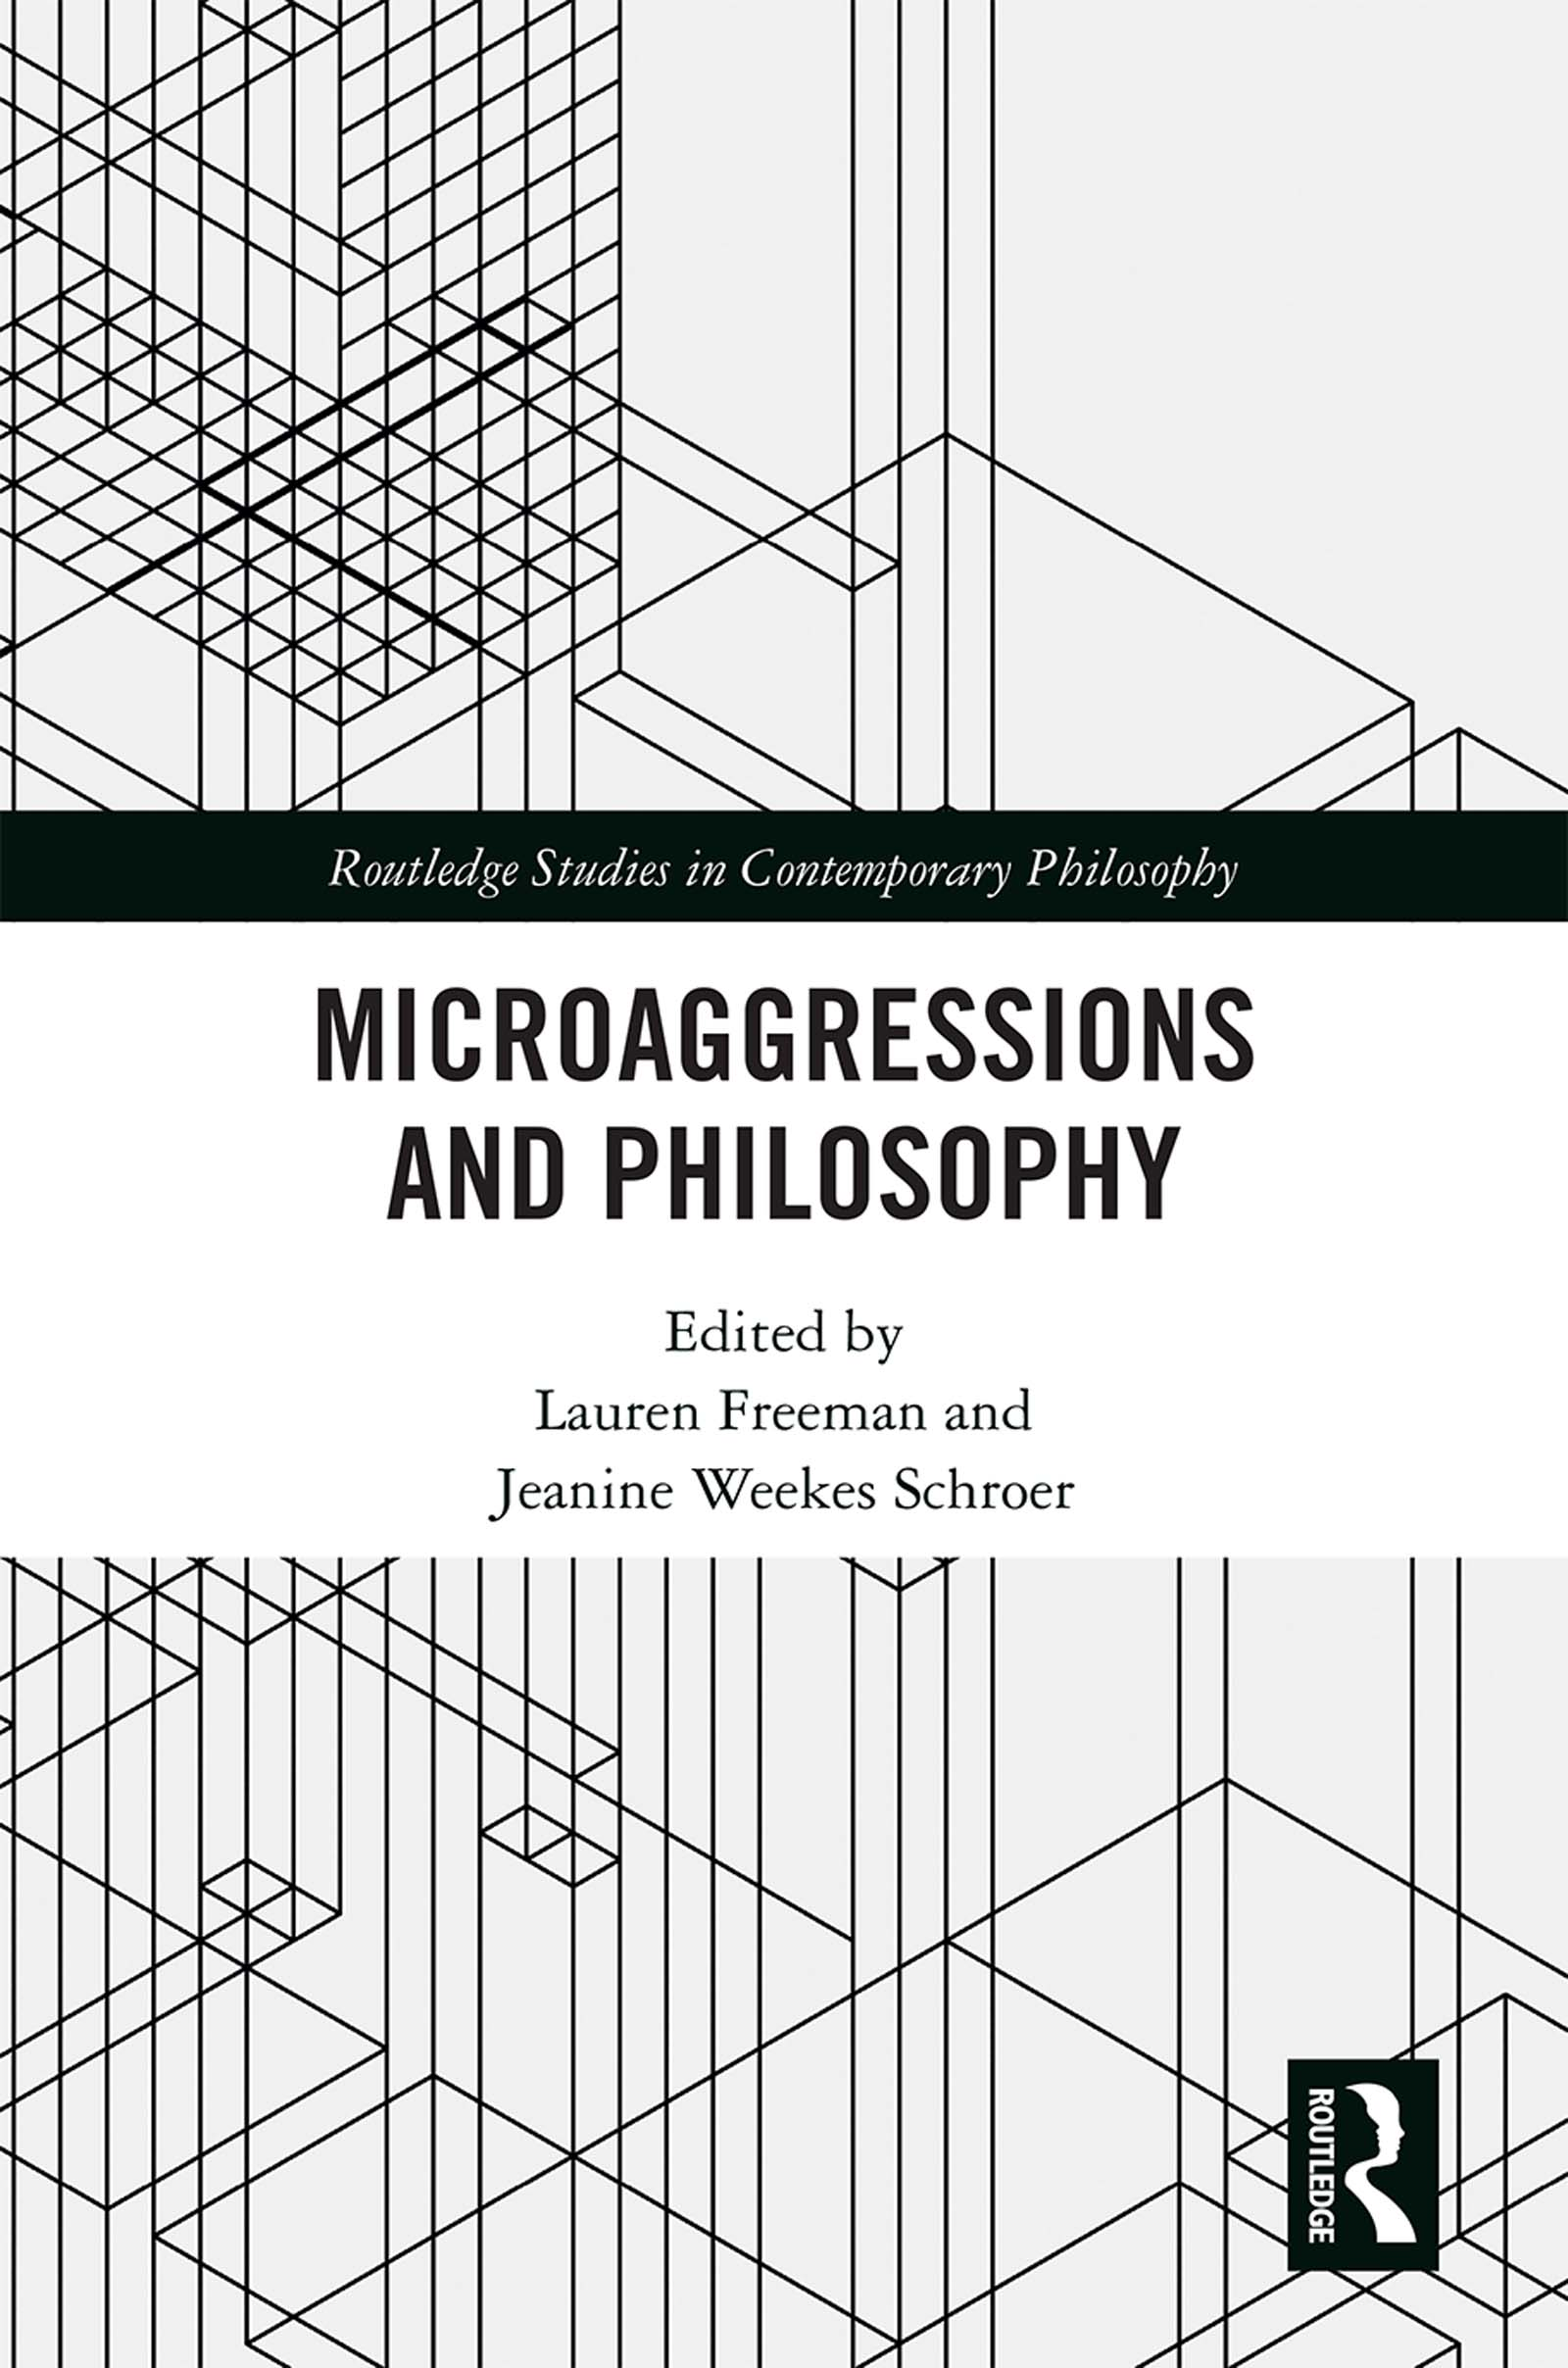 Microaggressions and Philosophy